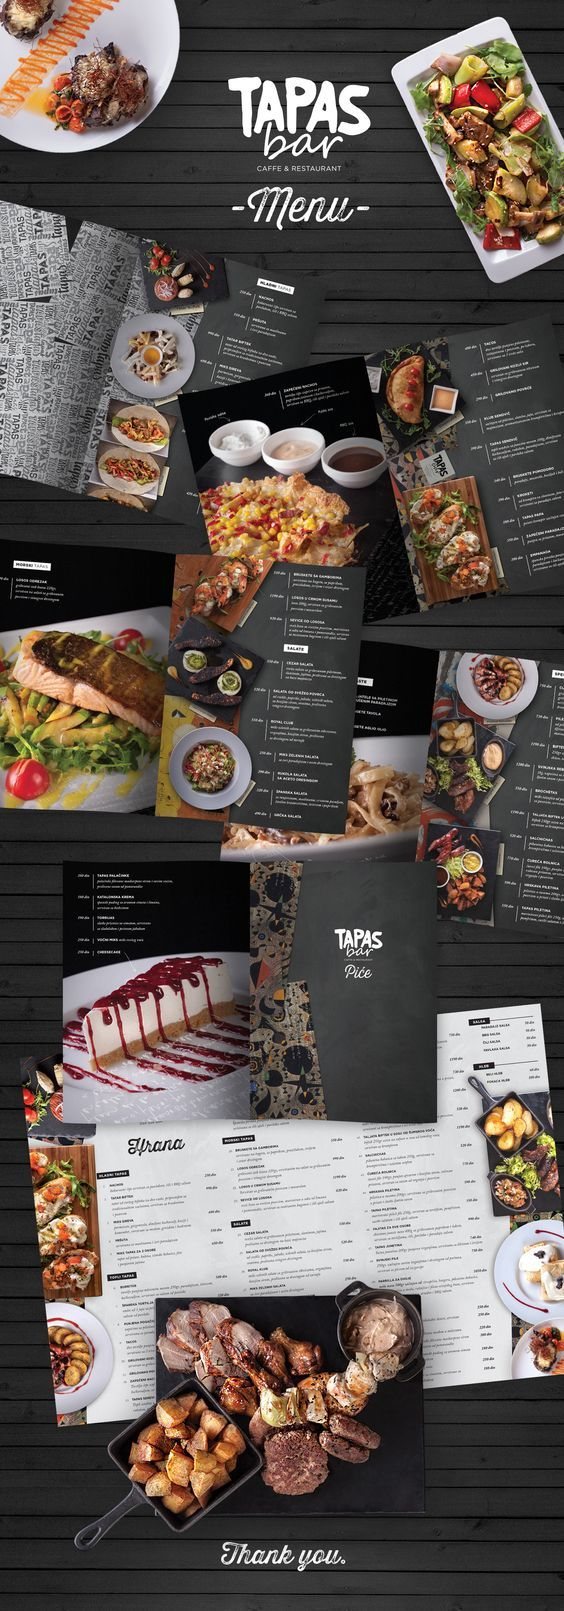 Stick to the roots of the restaurant with a classic restaurant menu design